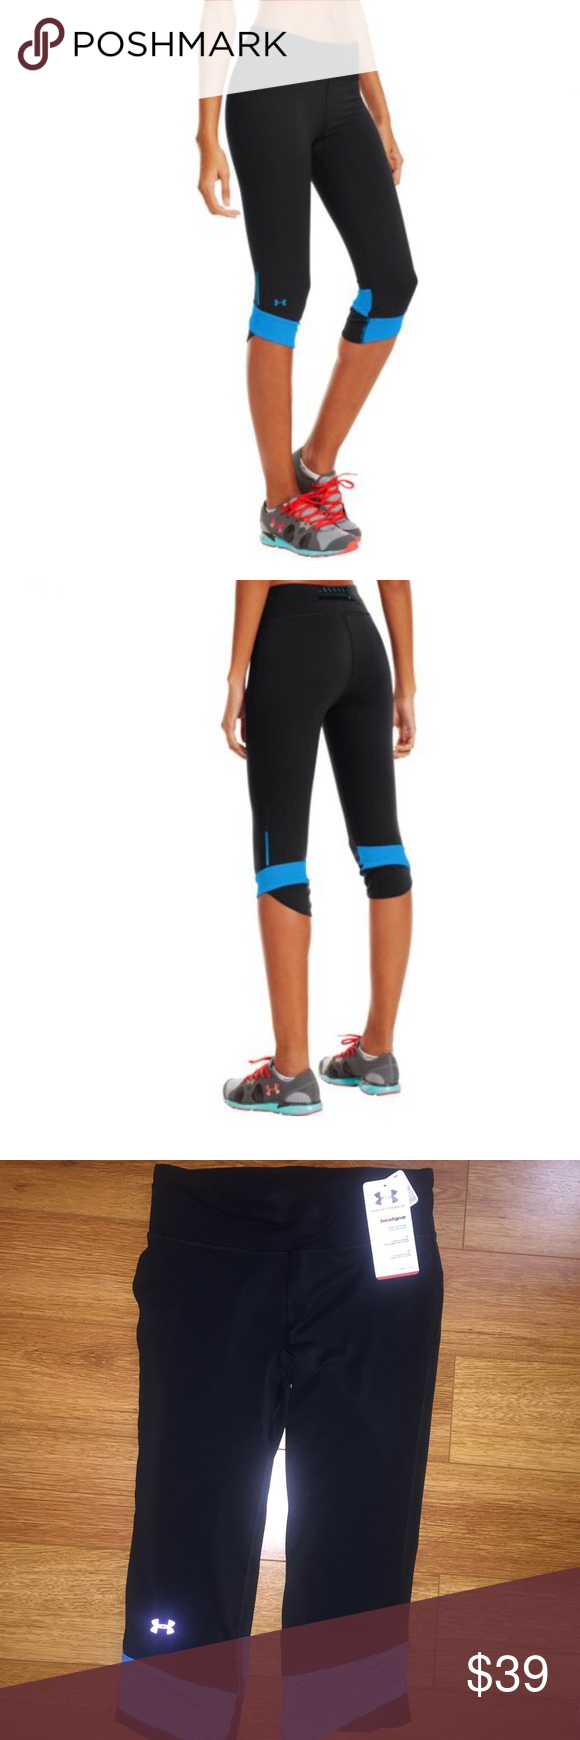 Under Armour Women's Fly-By Compression Capri Soft, brushed mid-weight fabric delivers superior temperature regulation during your run. Signature Moisture Transport System wicks sweat to keep you dry and light. Lightweight, 4-way stretch construction improves mobility and maintains shape. Ergonomic flatlock side seams eliminate chafing for a superior comfort fit. Scalloped hem with open-hole performance mesh insets for unrivaled breathability. High-rise waist with exposed rear drawcord and…